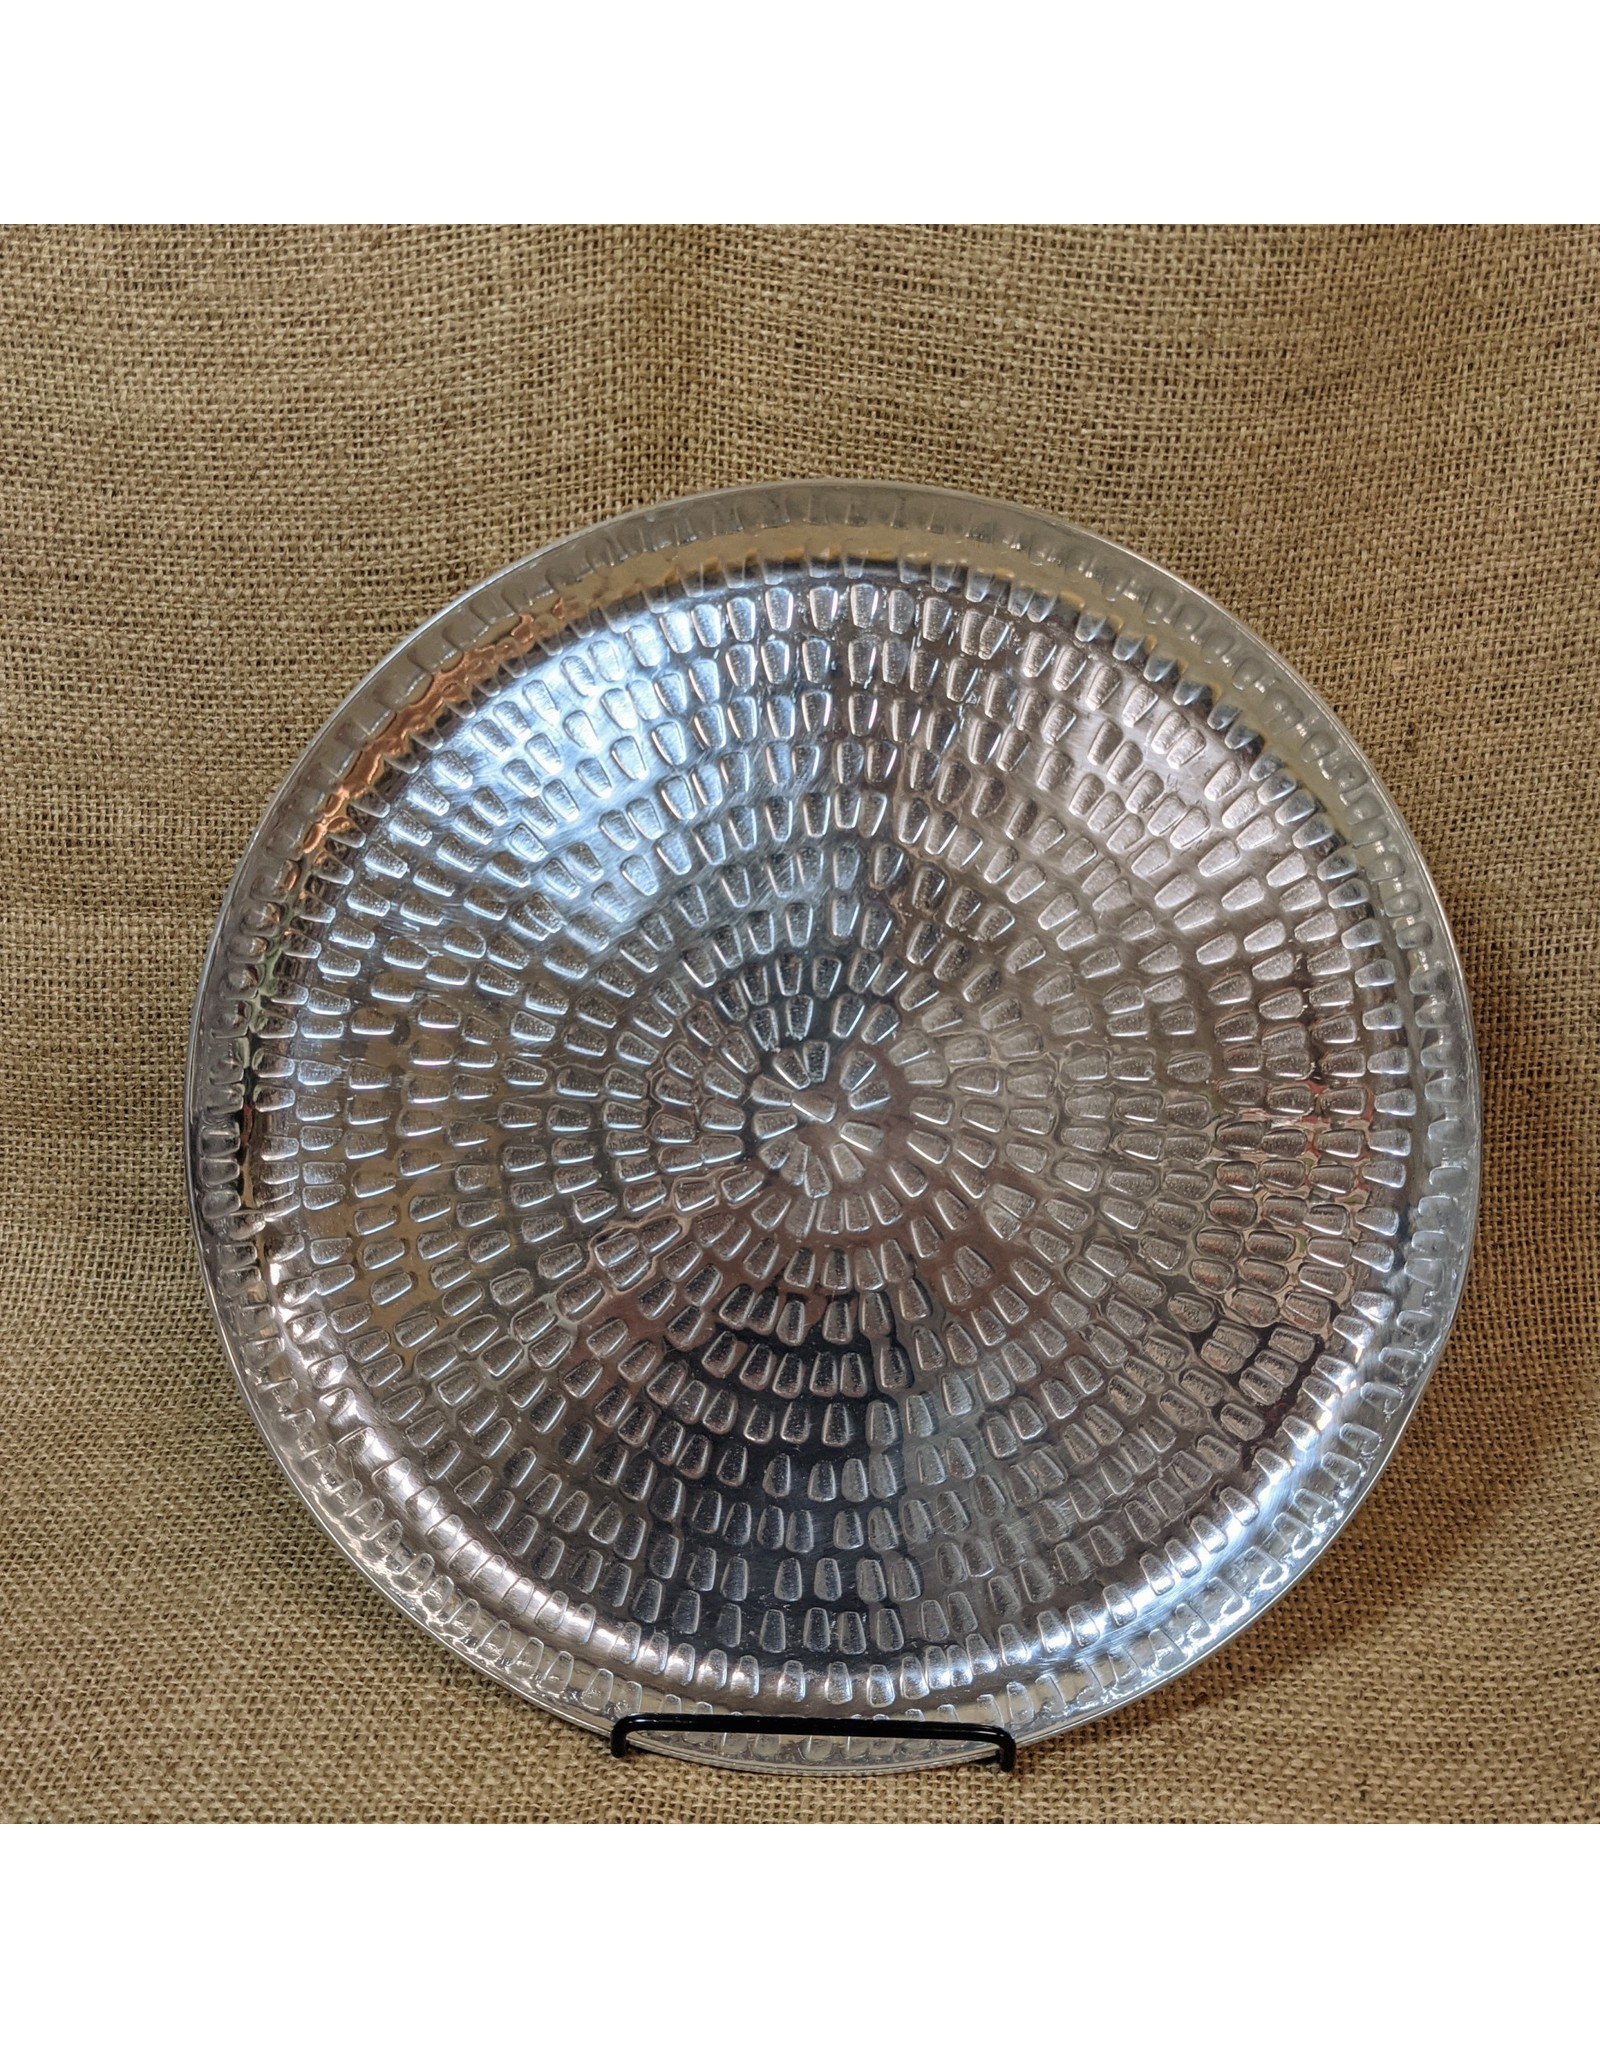 Ten Thousand Villages CLEARANCE Round Aluminum Serving Tray, India